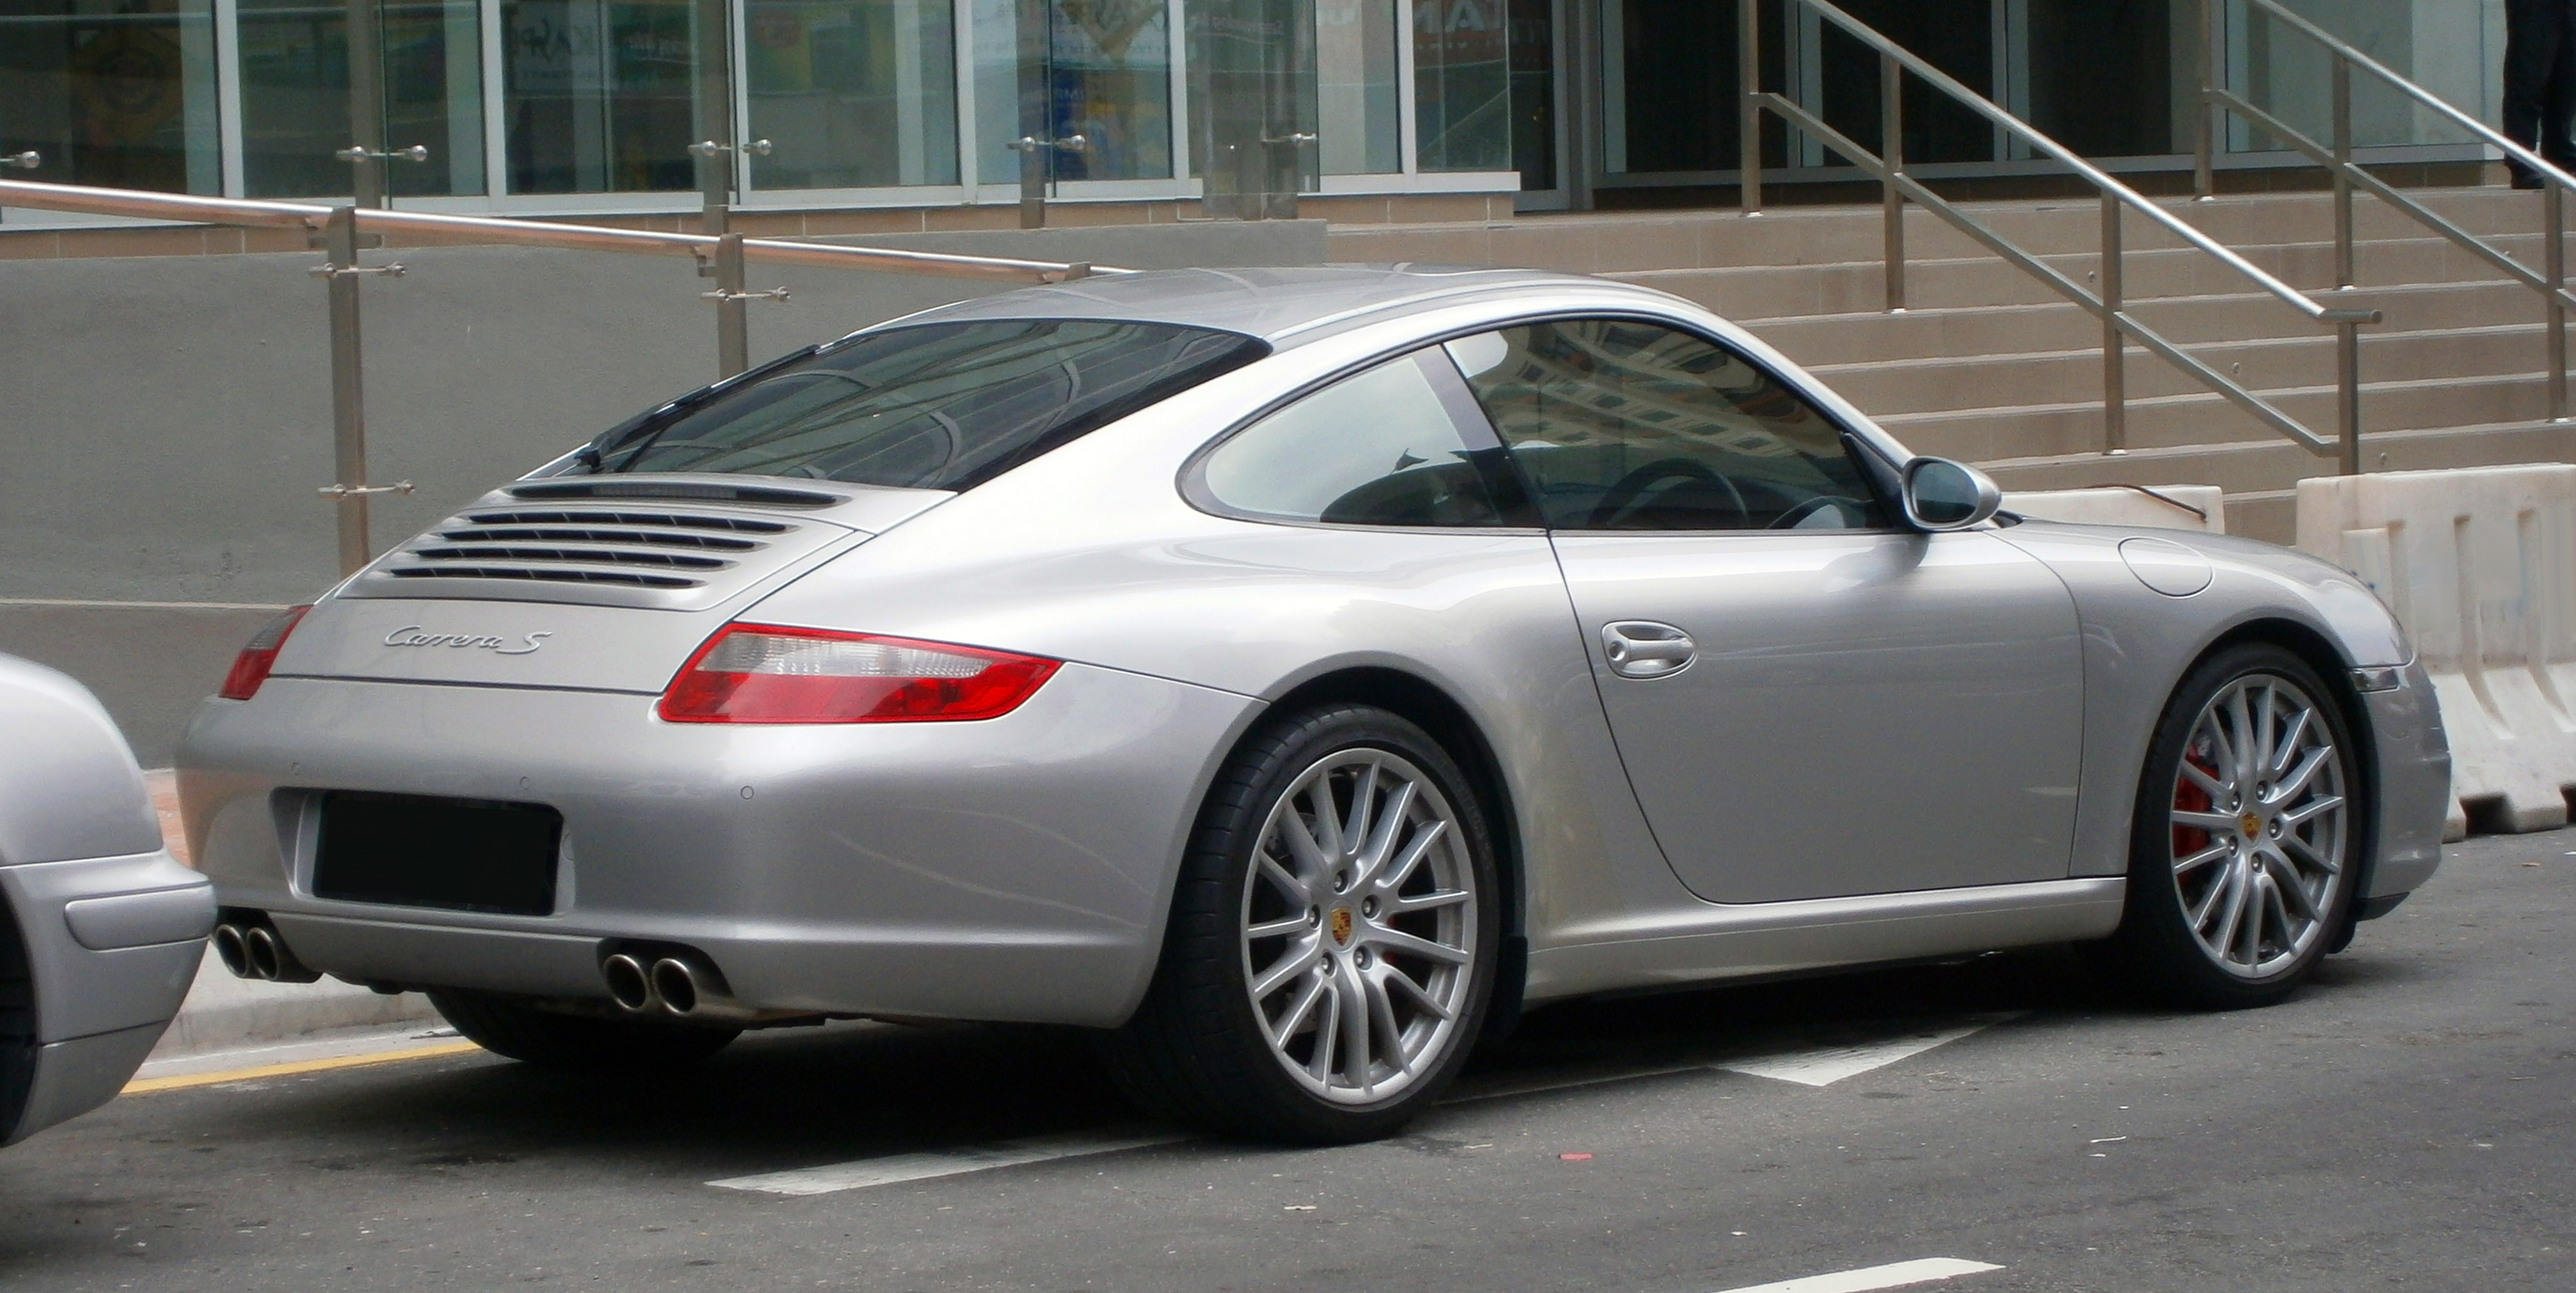 2004 Porsche 911 Carrera S 997 Related Infomation